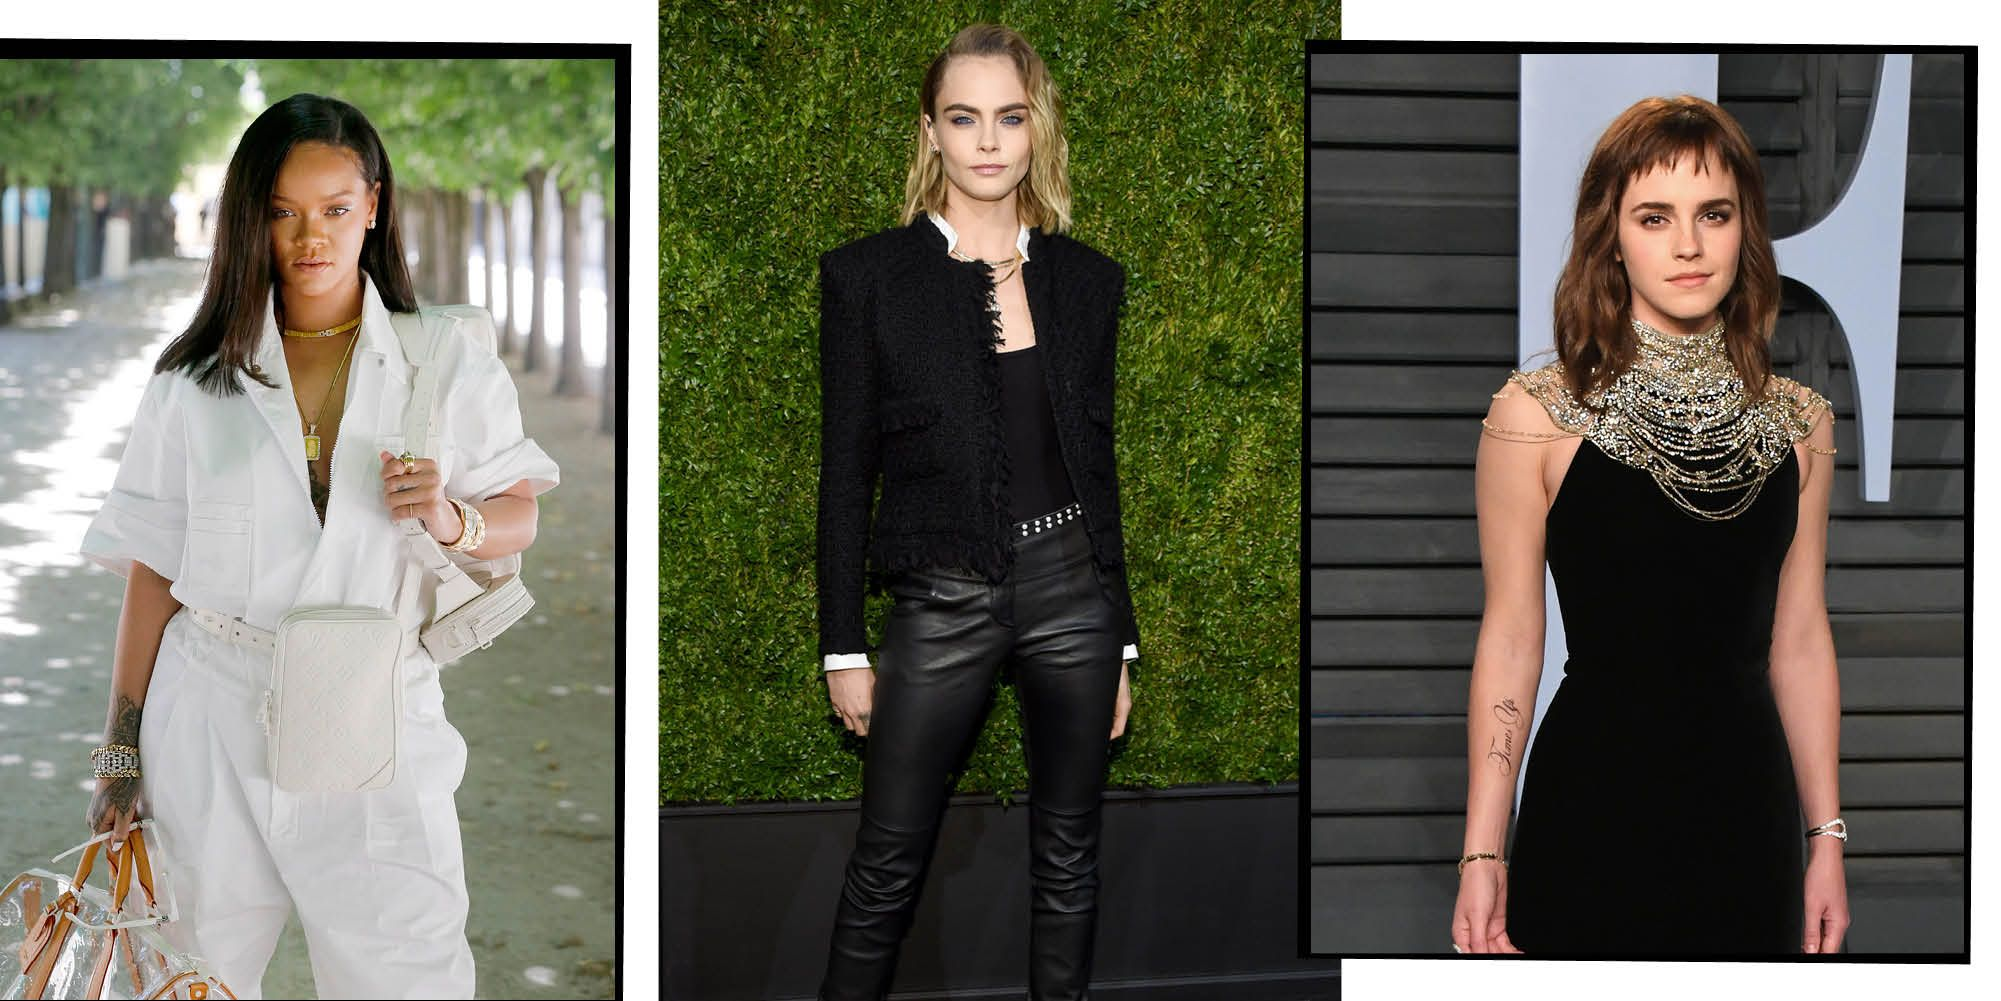 Rihanna, Cara Delevingne and Emma Watson Lead The Outcry Over Alabama's Anti-Abortion Bill